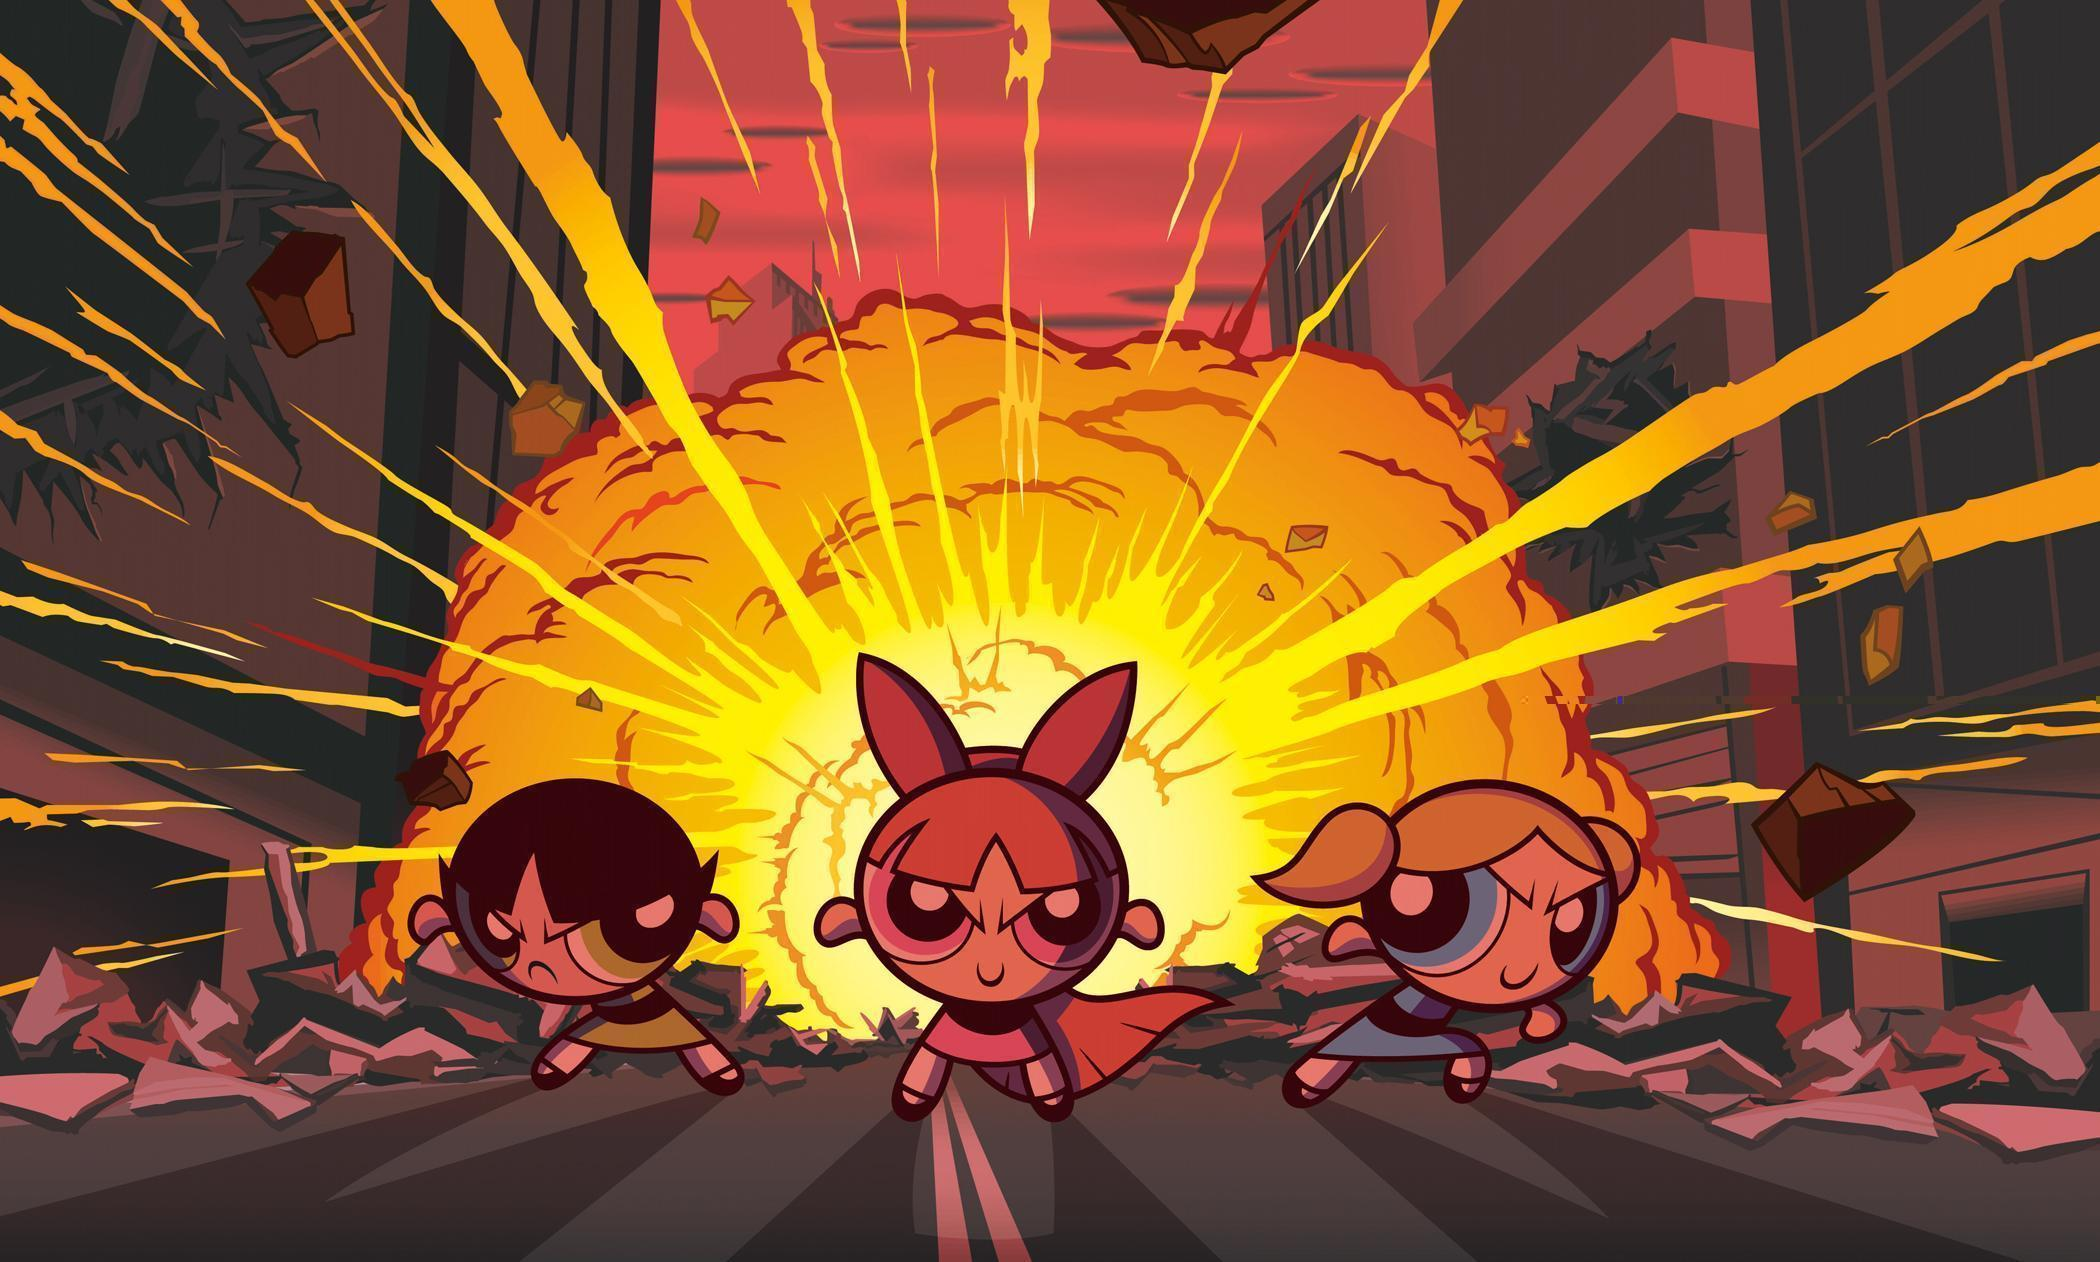 16 The Powerpuff Girls HD Wallpapers | Backgrounds - Wallpaper Abyss